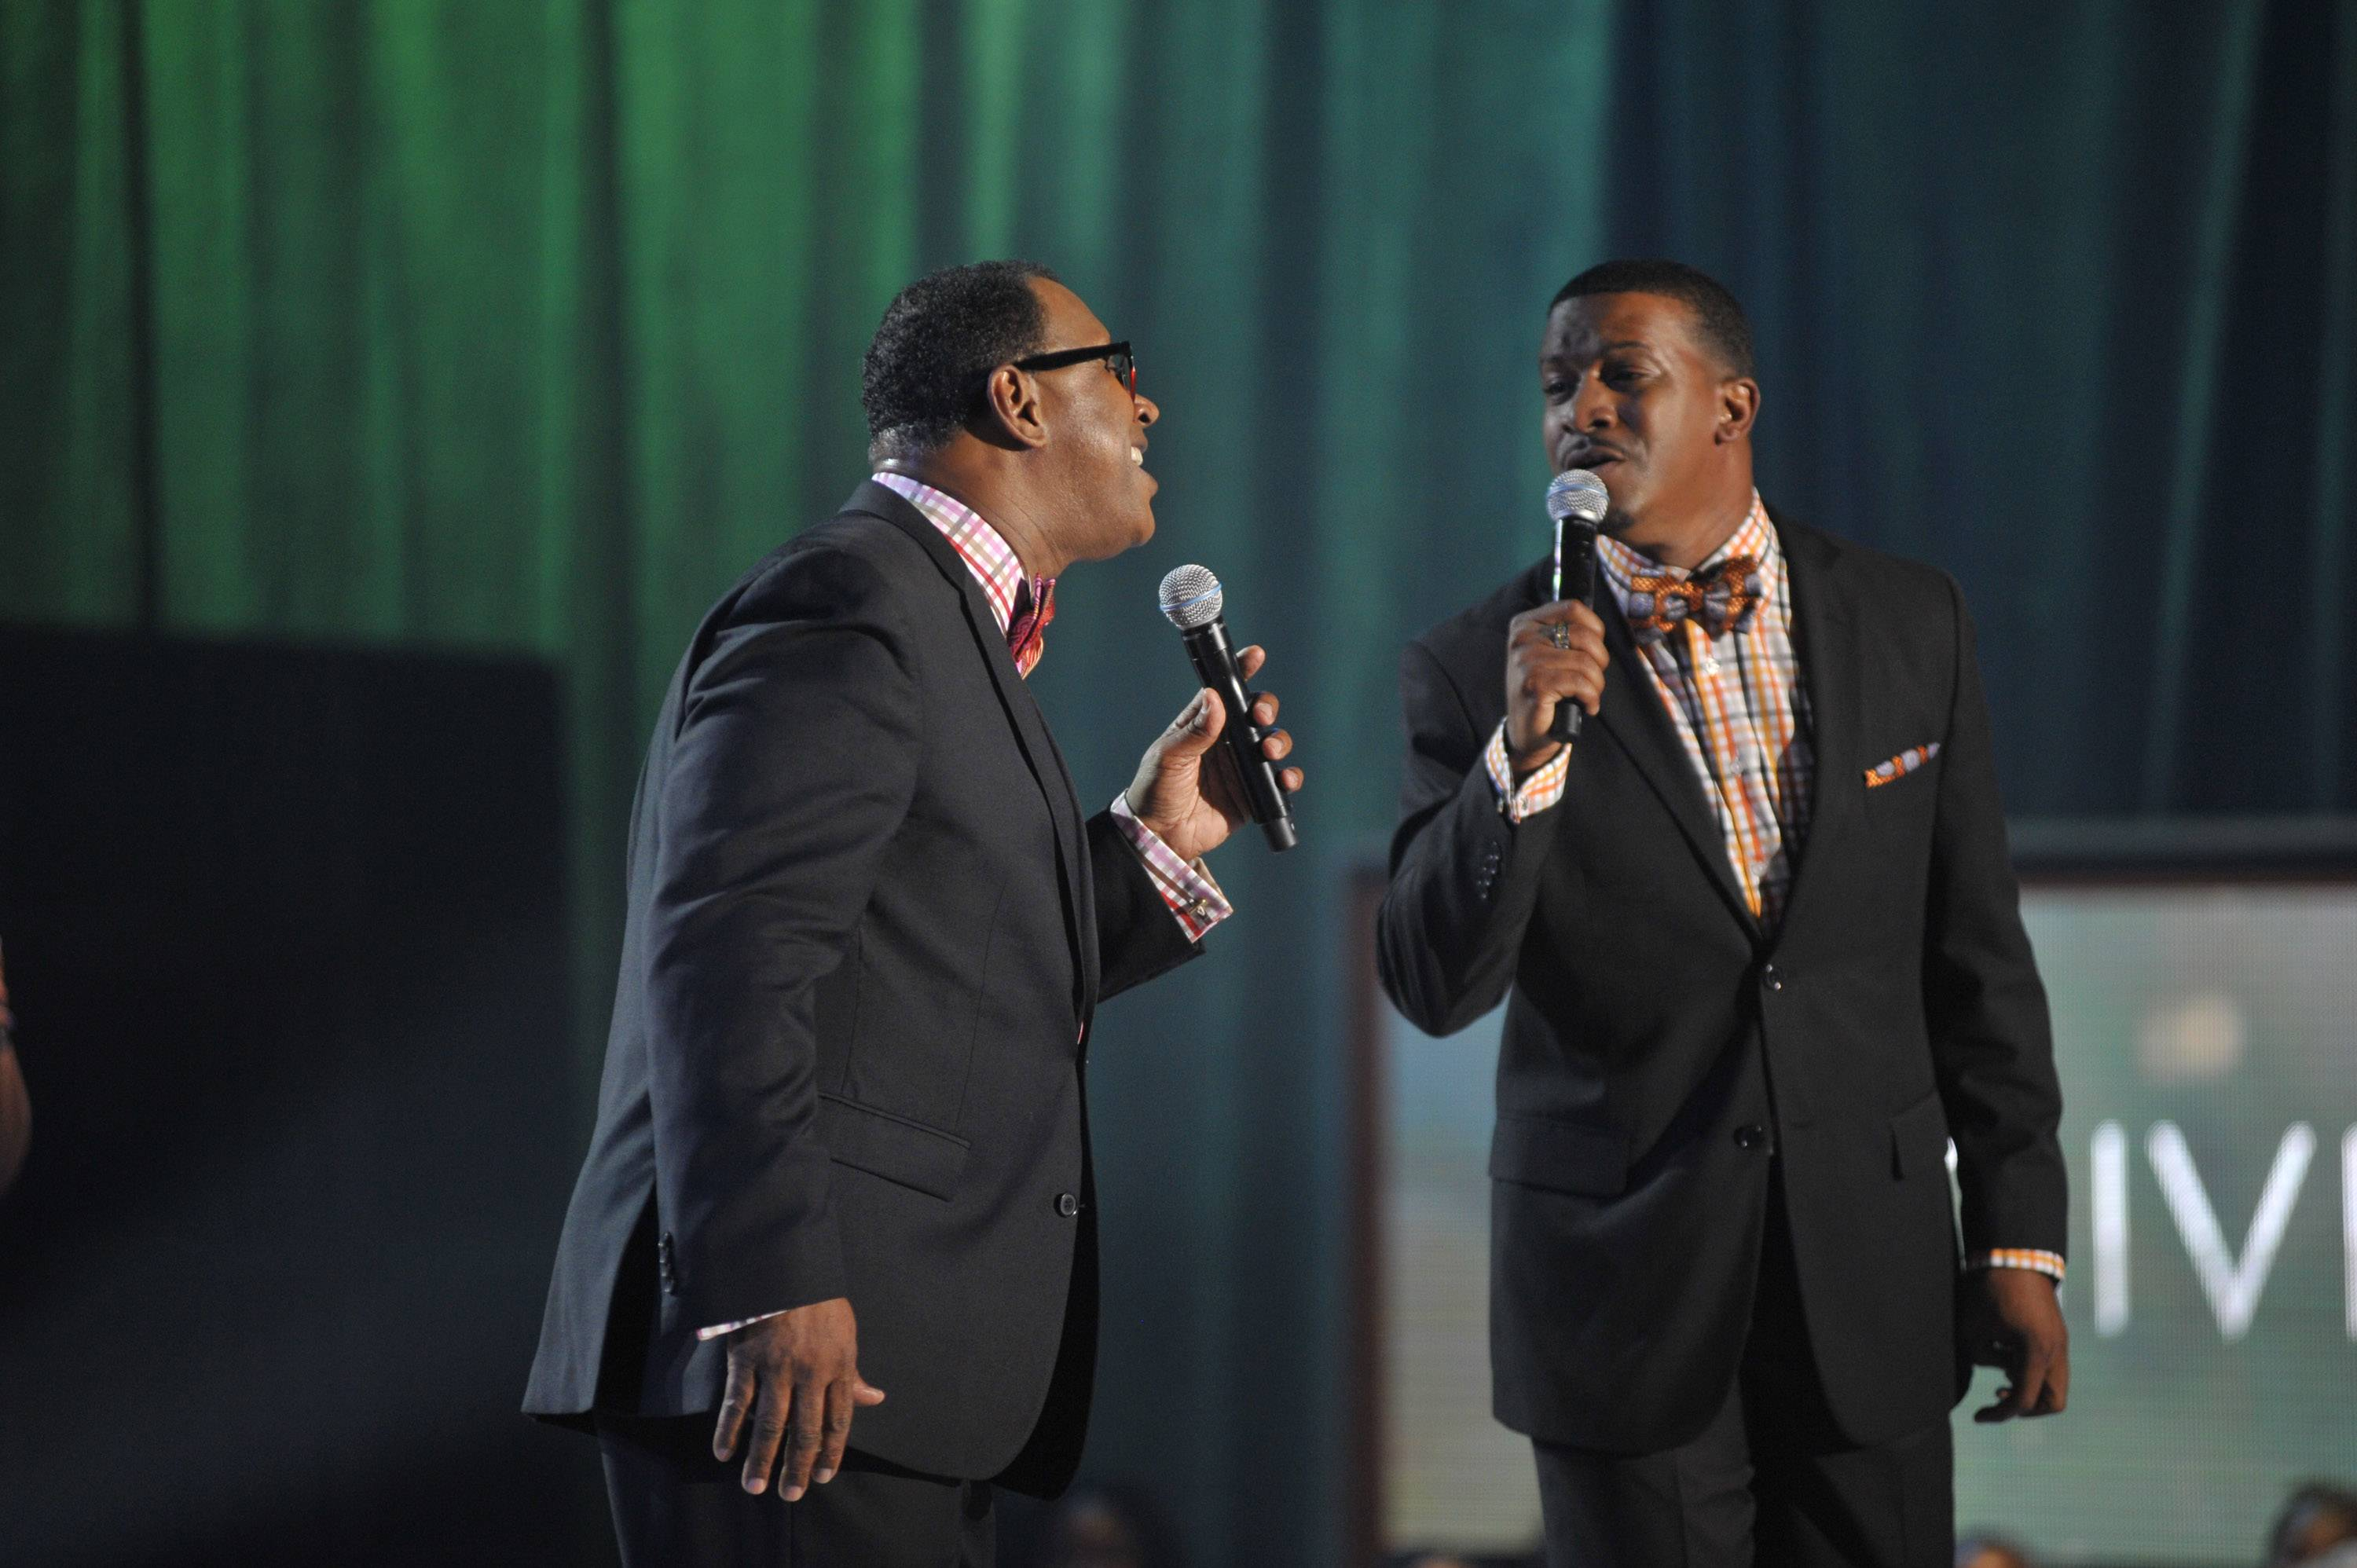 Clap Along  - The Williams Brothers had the crowd clapping and on their feet! (Photo: Kris Connor/Getty Images for BET Networks)